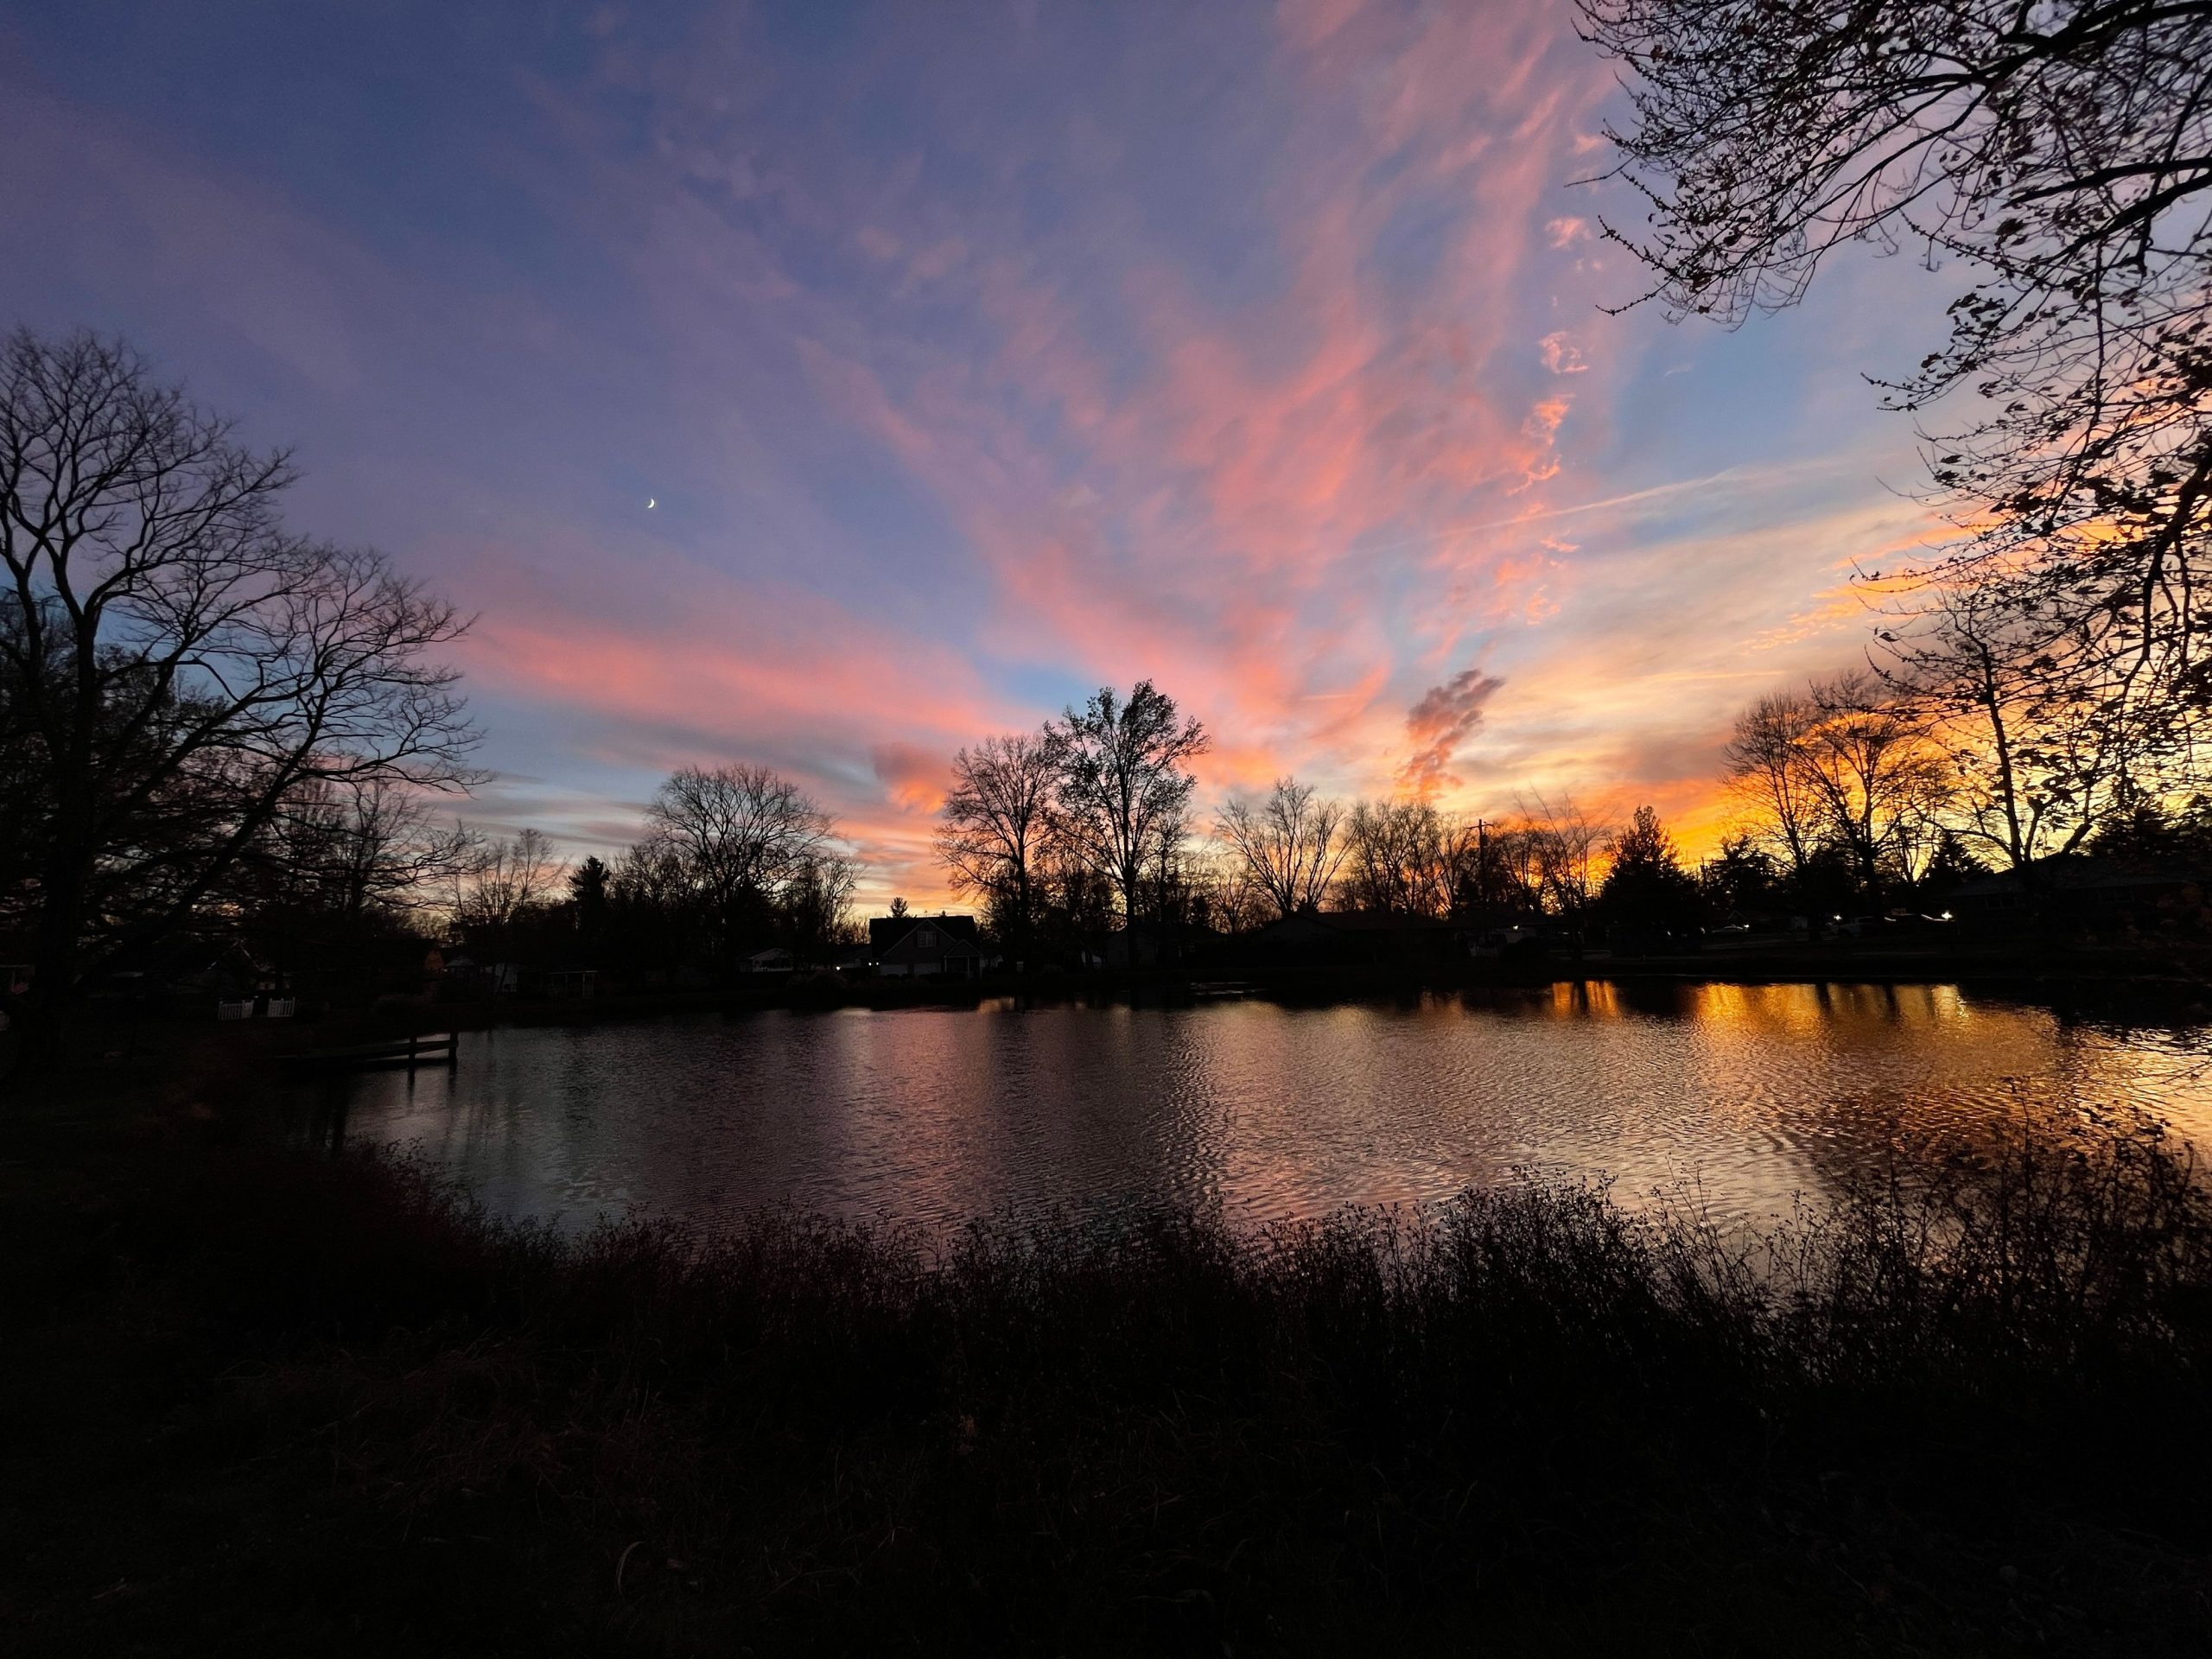 The sun sets over a lake, making the sky a vibrant blue. The clouds vary in color from light pink to orange and yellow.